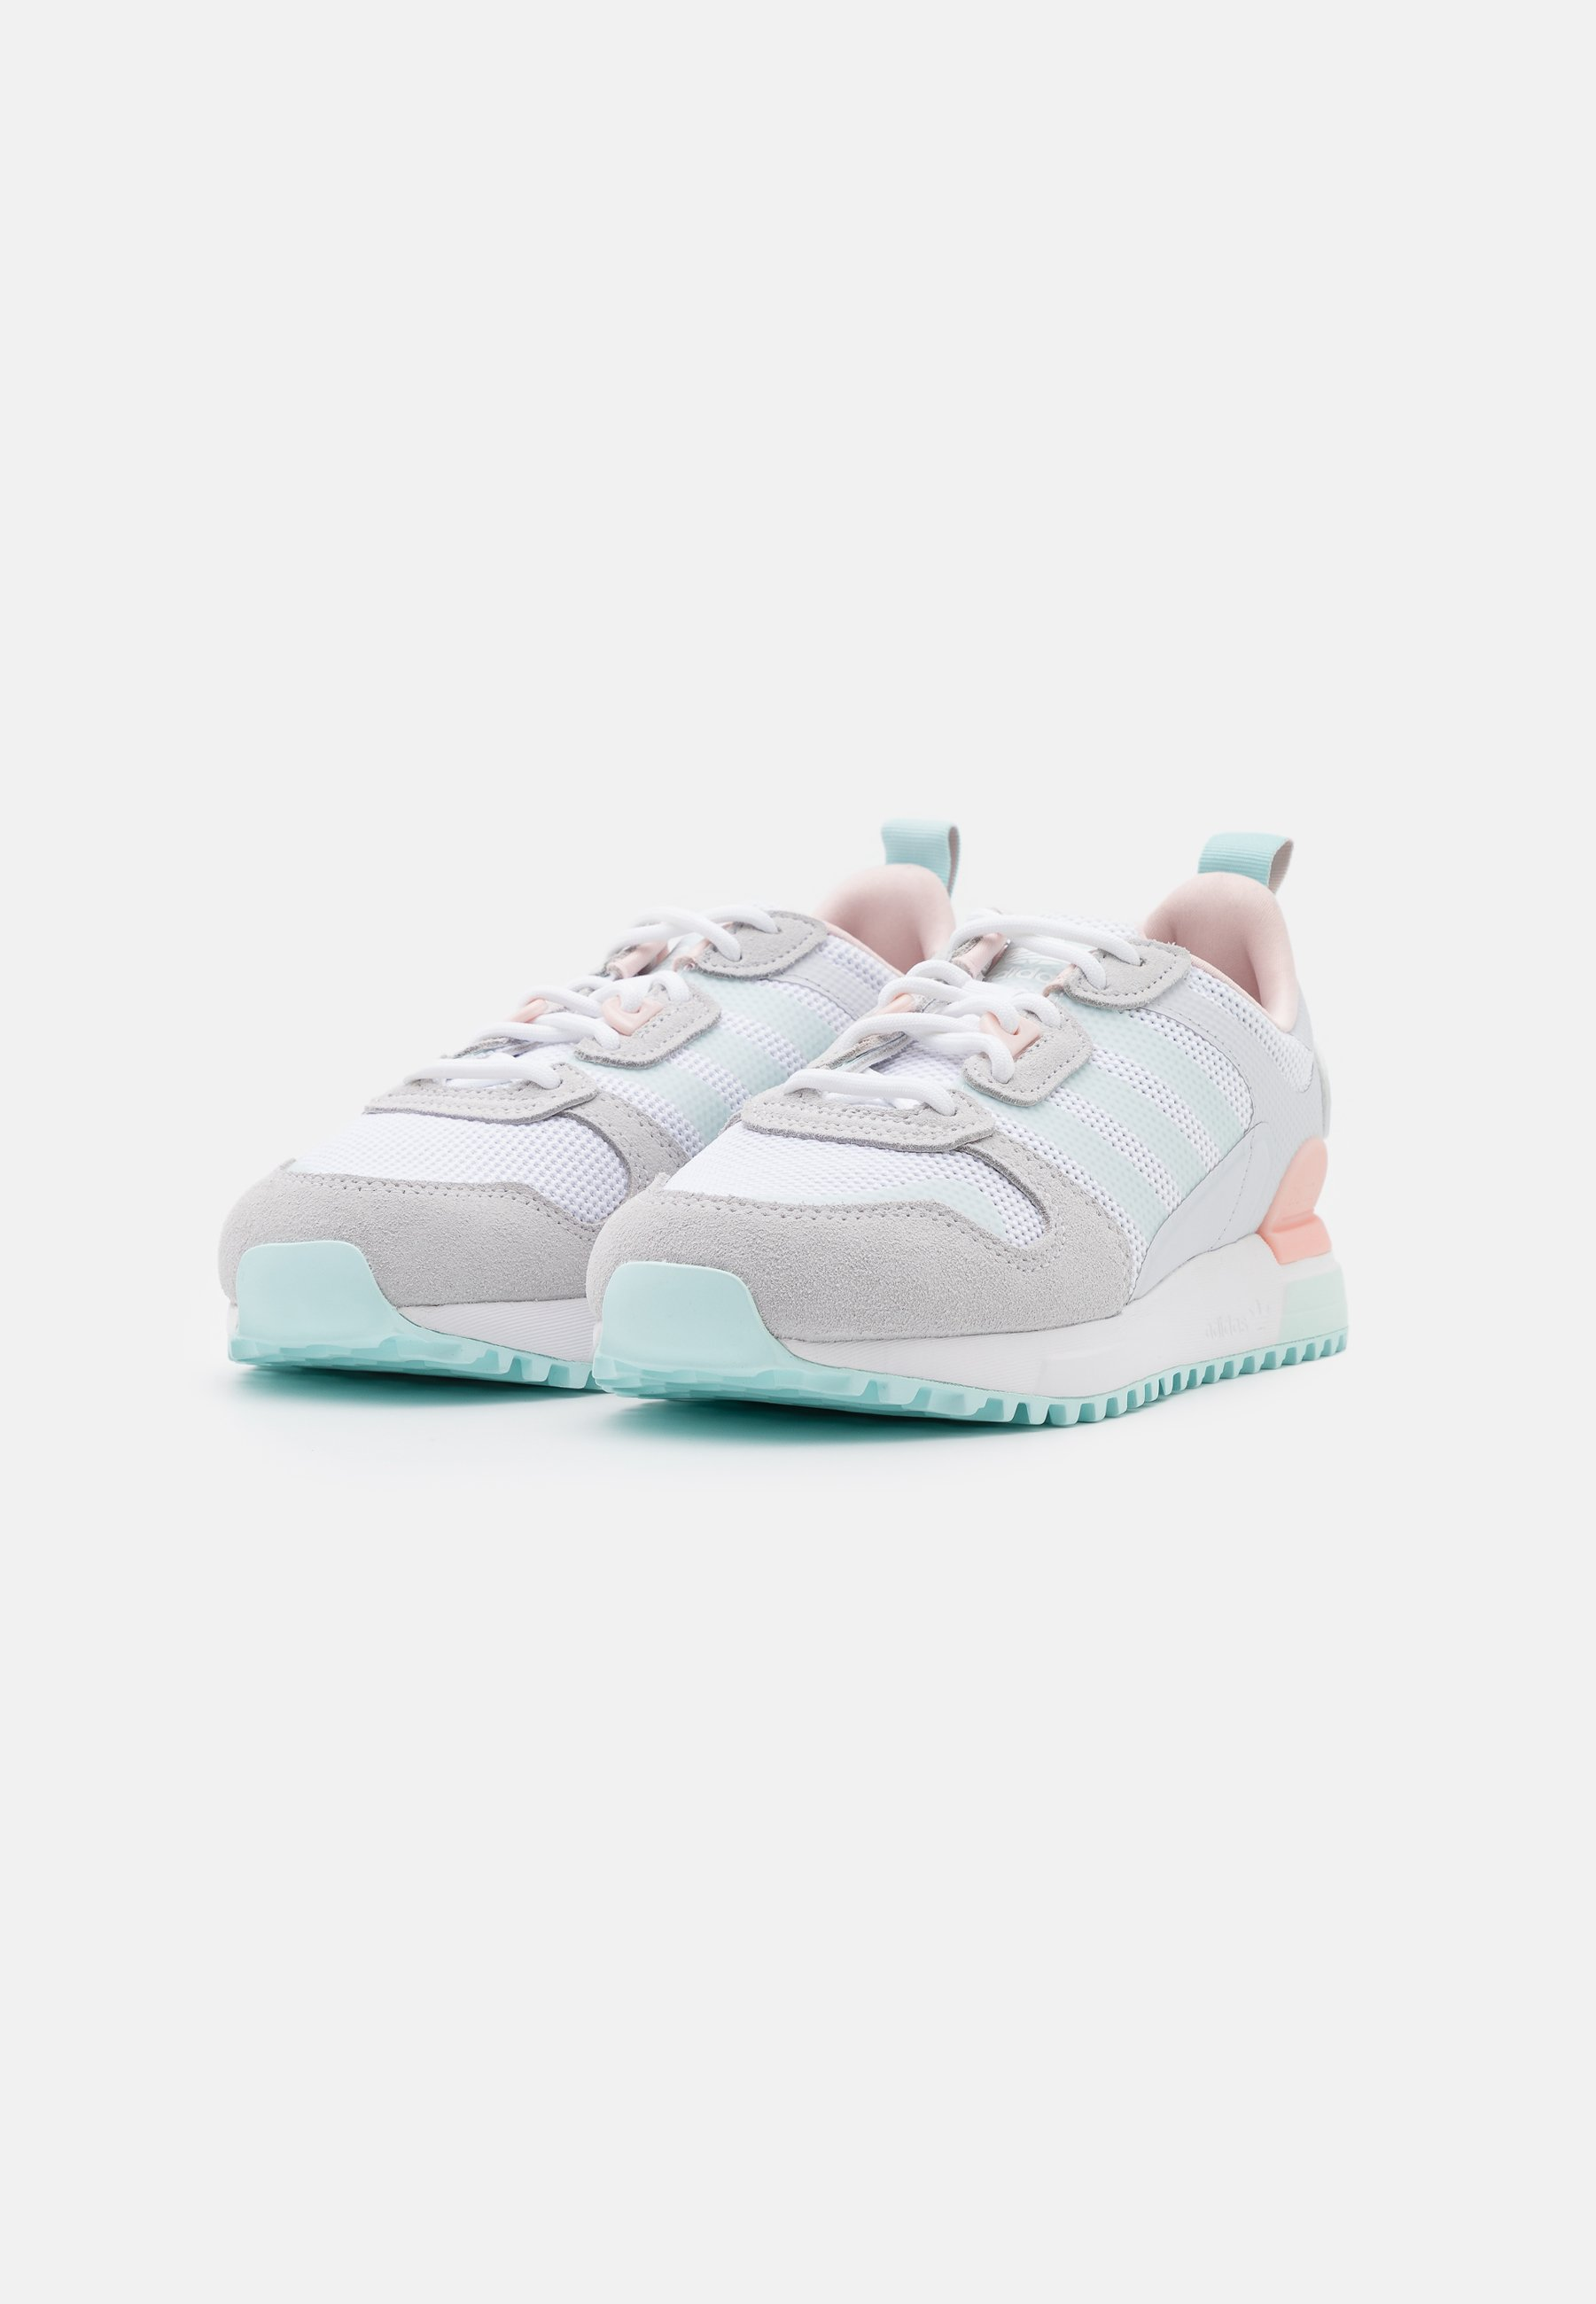 adidas Originals ZX Sneaker low dash grey/ice mint/icey pink/lila